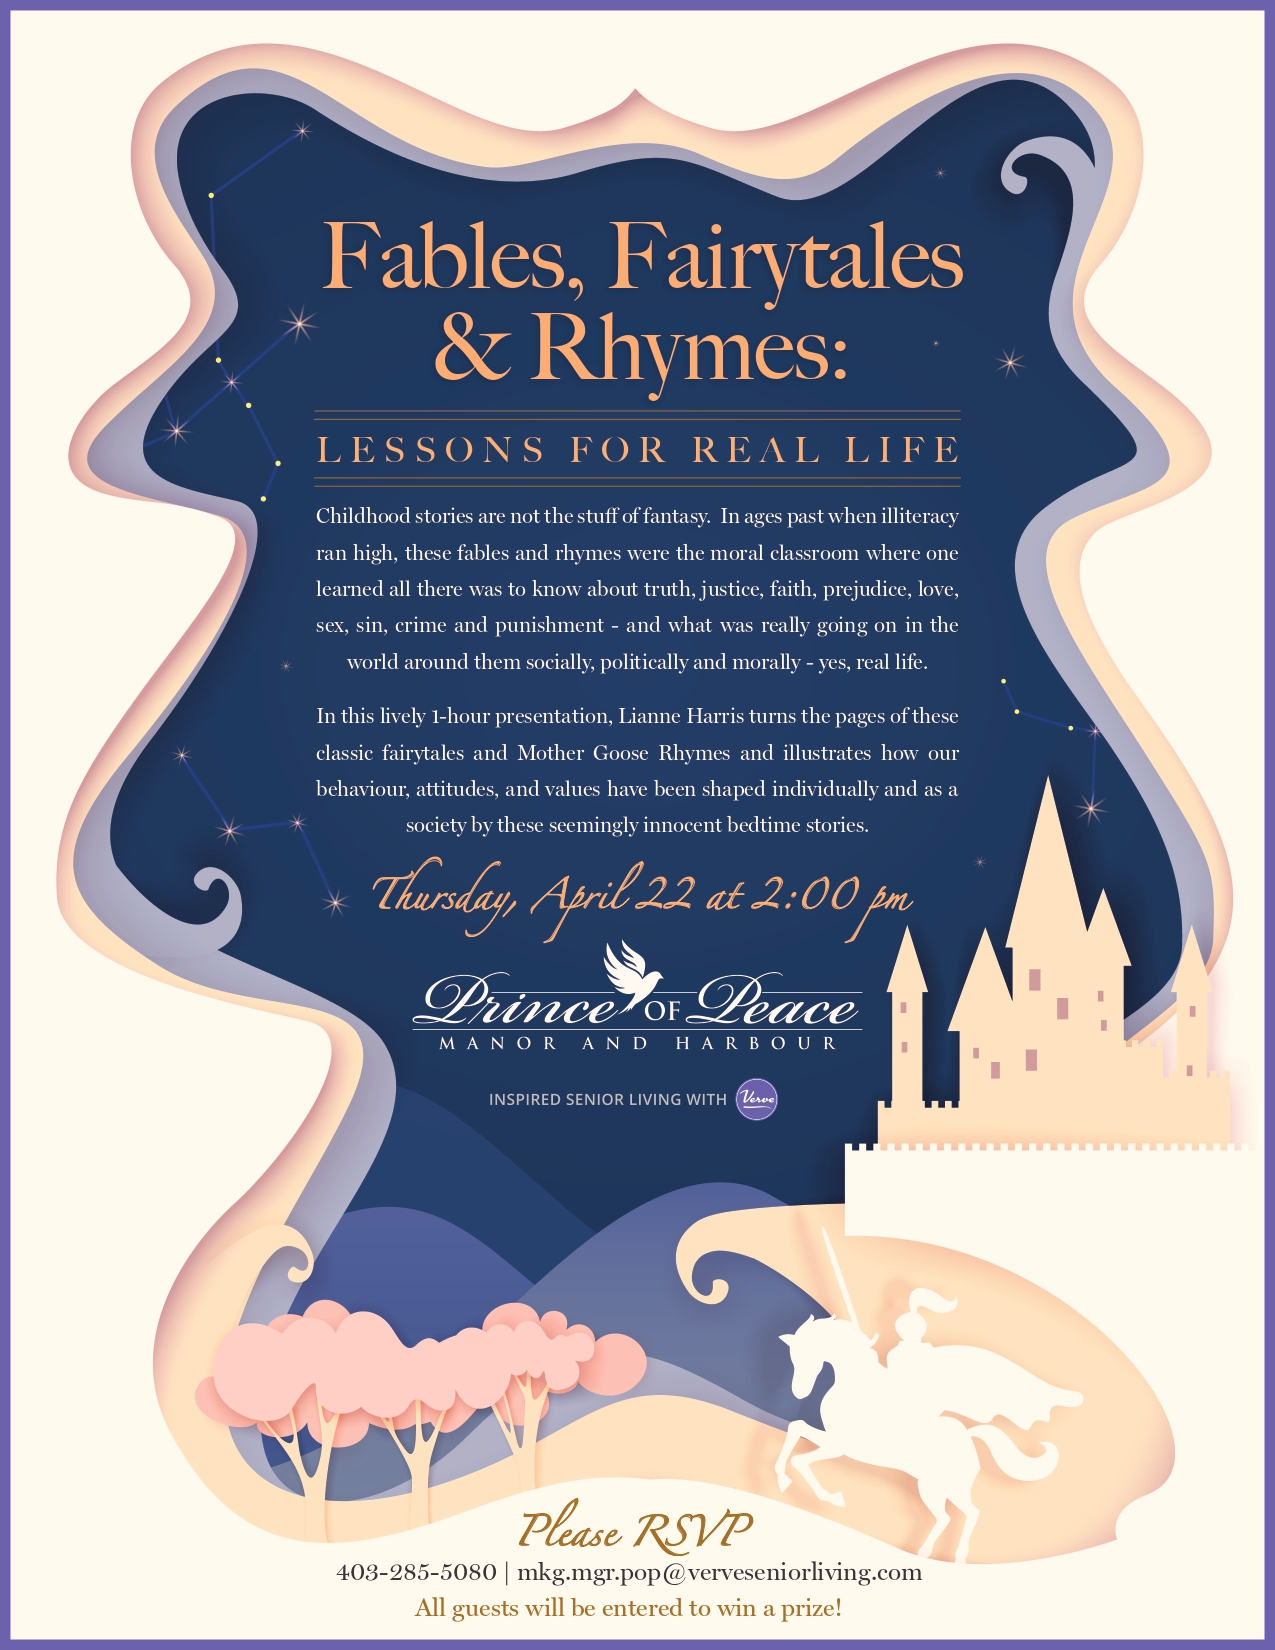 Virtual Event | Fables, Fairytales & Rhymes